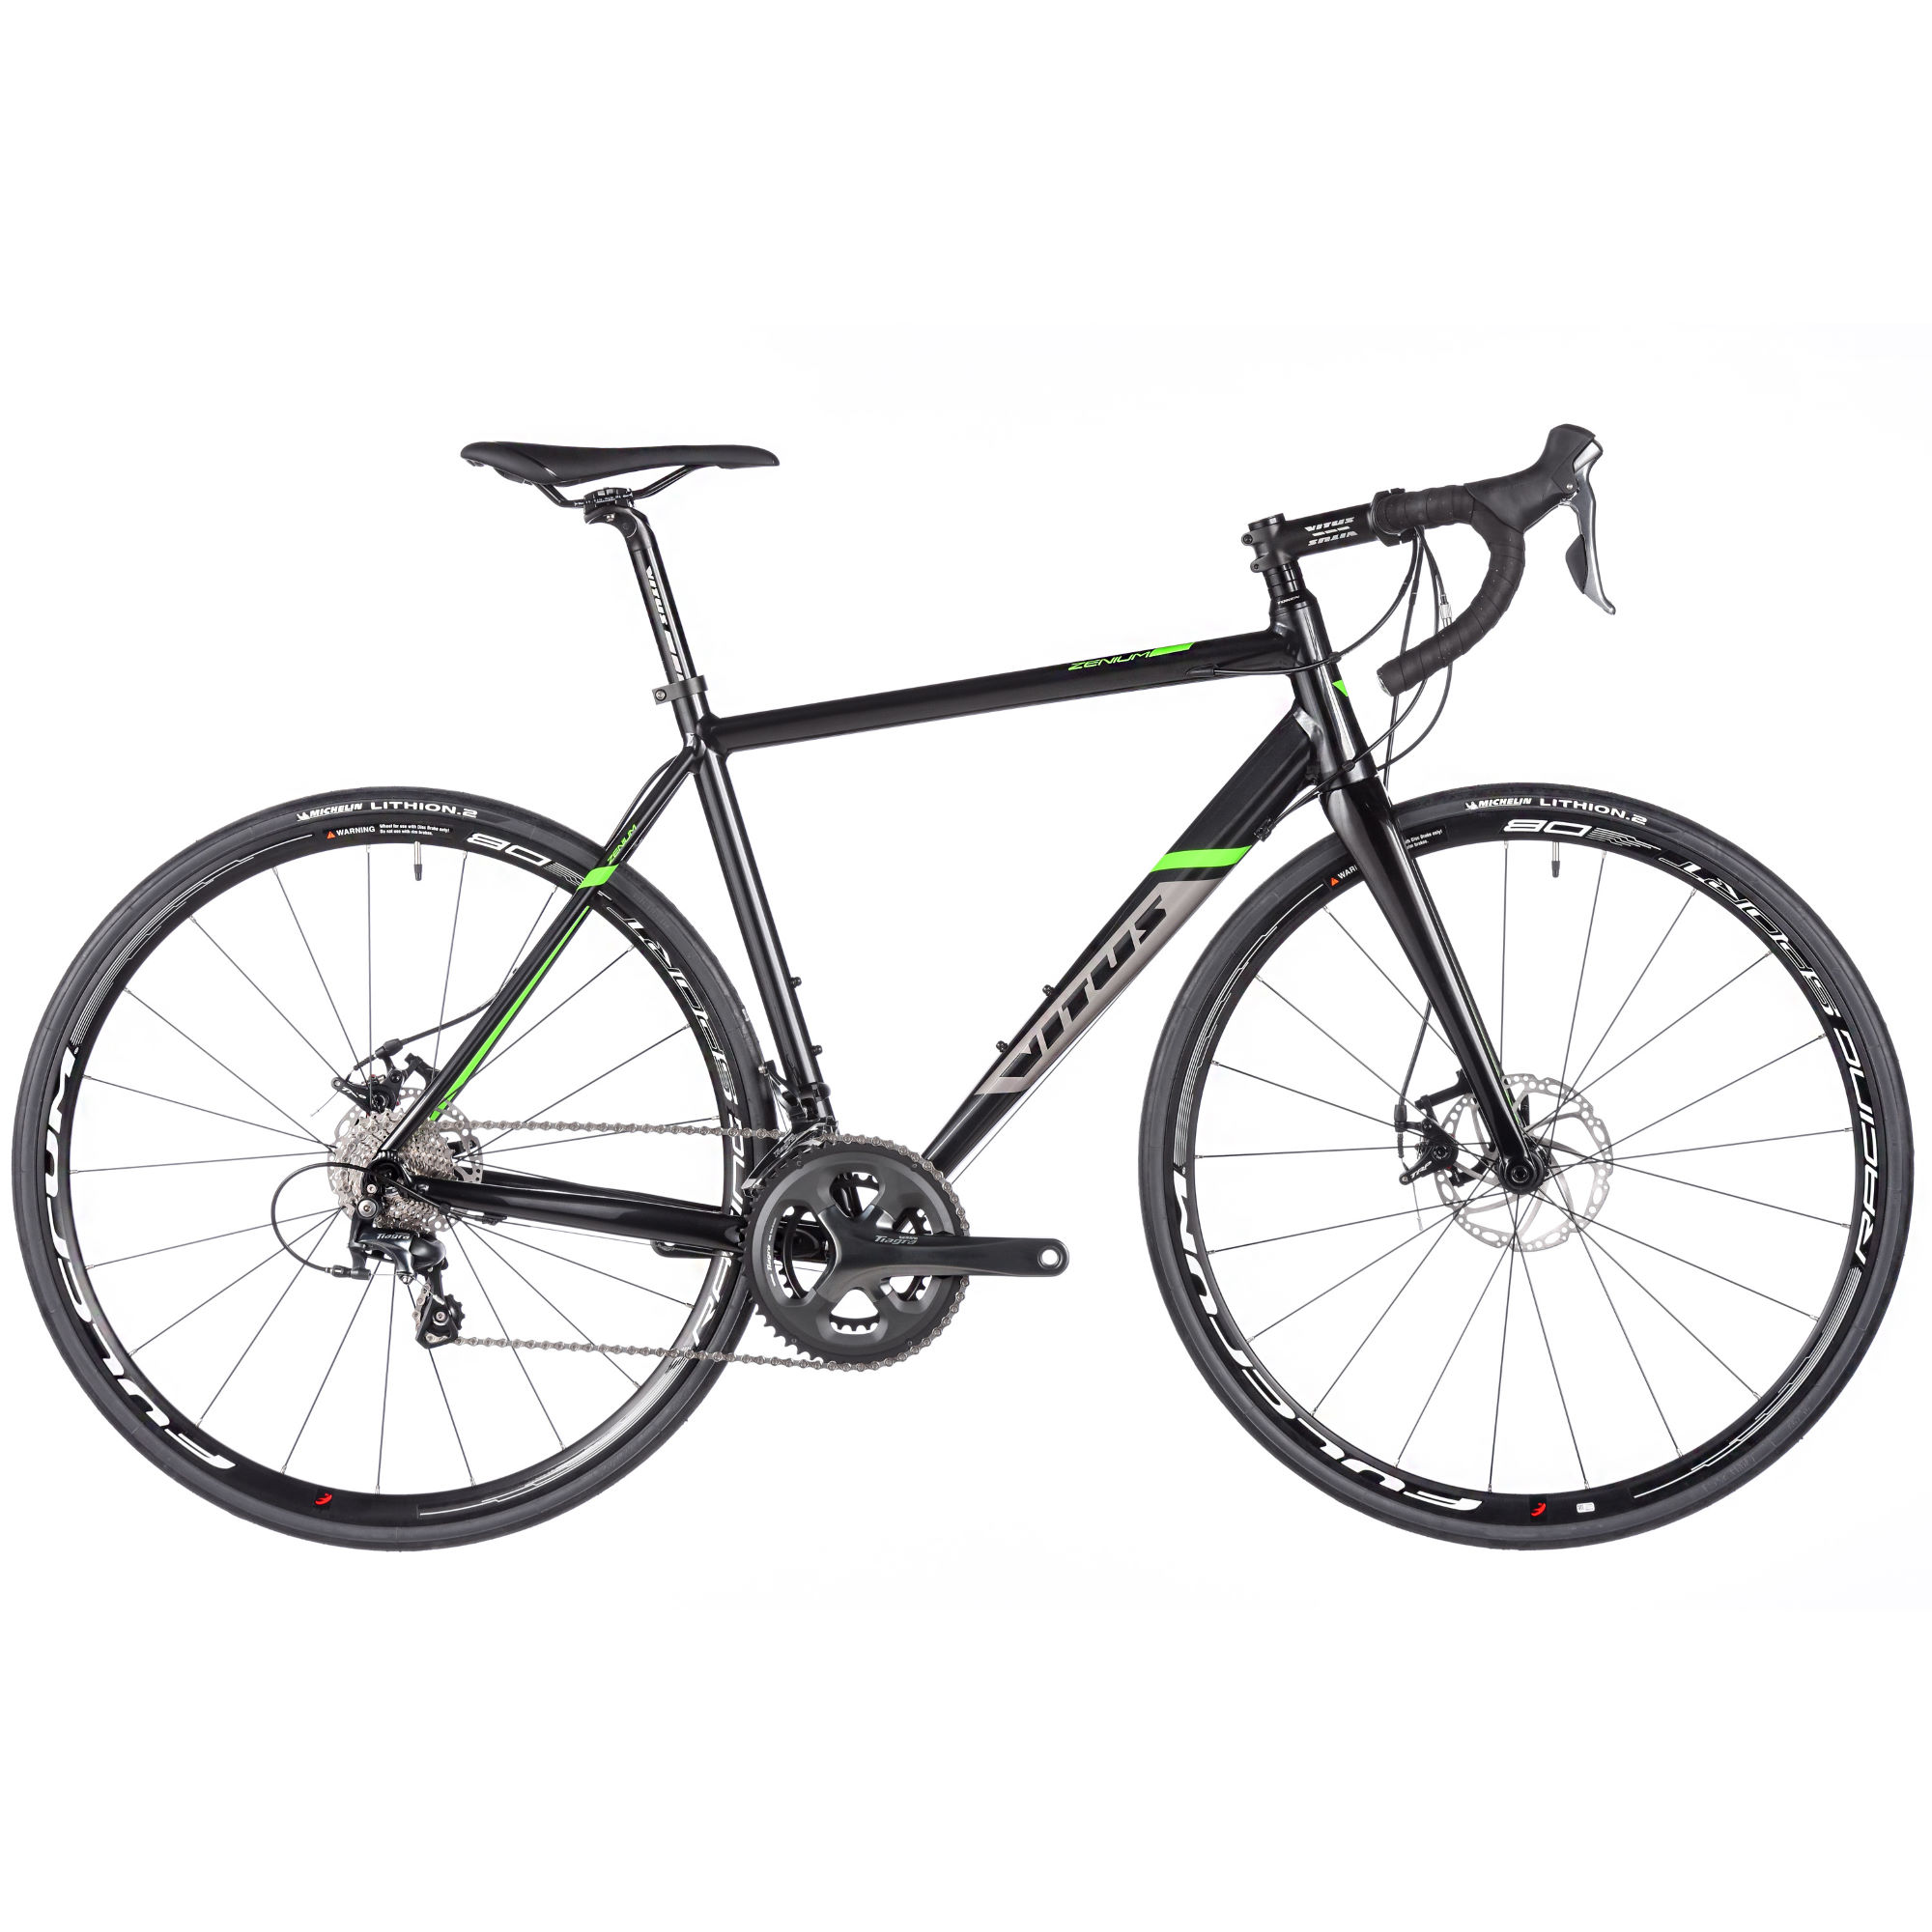 Wiggle Road Time Trial Bikes